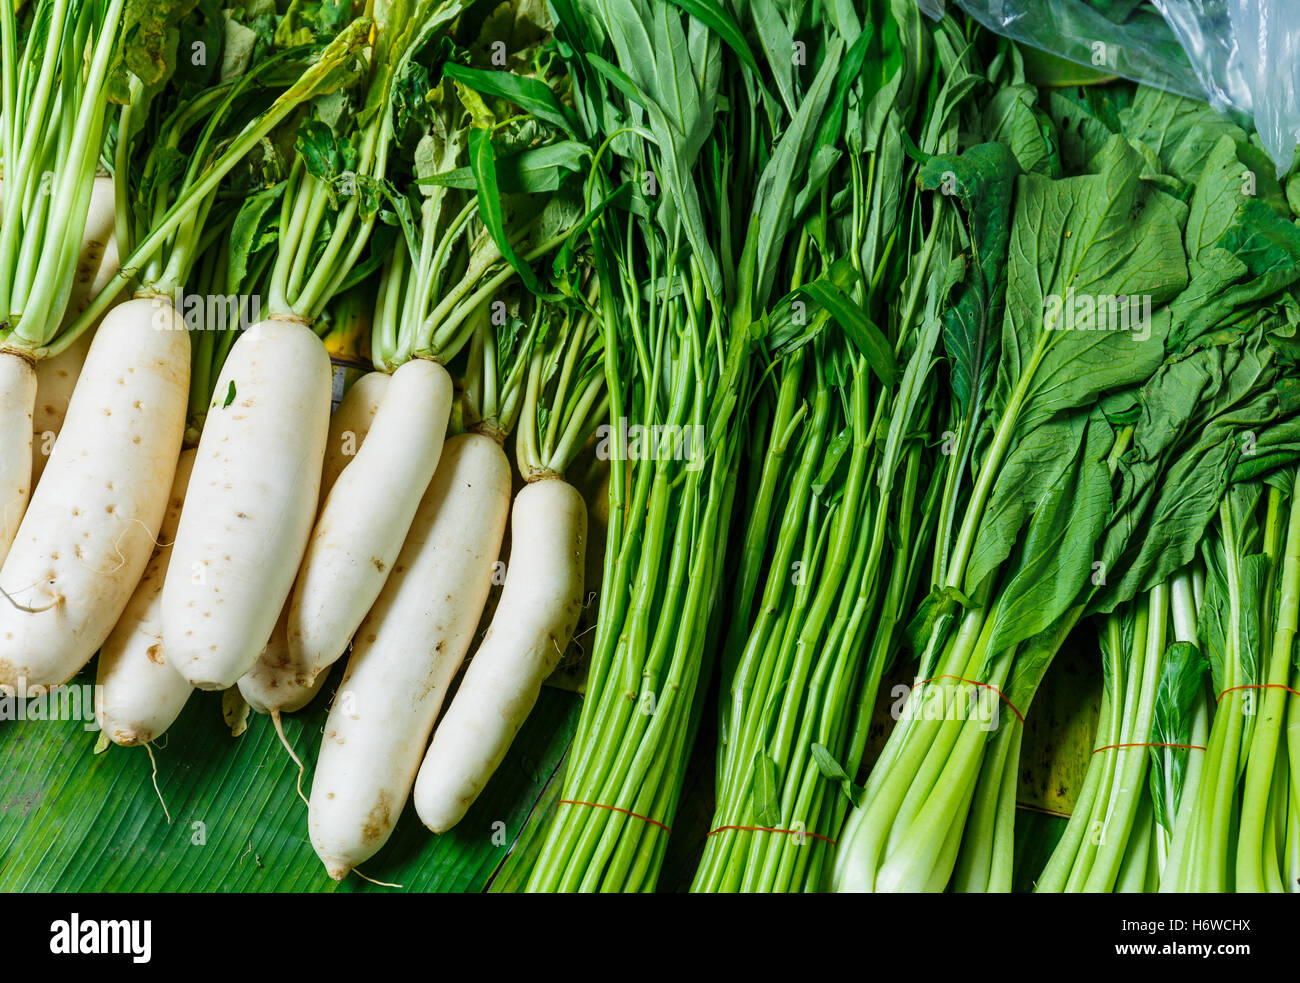 food aliment sell agriculture farming harvest root vegetable chinese stalk stem radish product celery organic chop Stock Photo